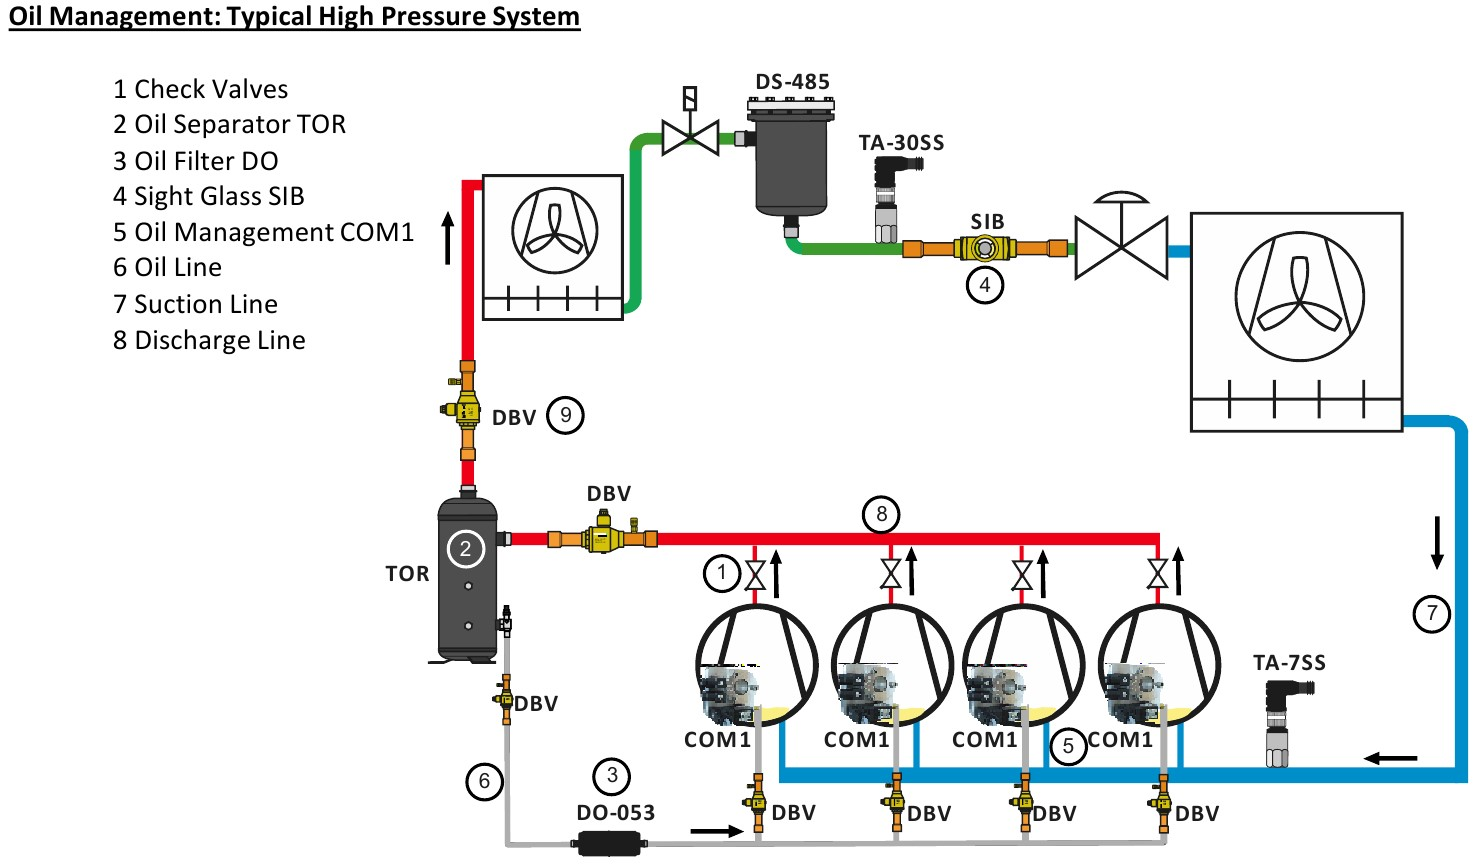 Oil Management Typical High Pressure System